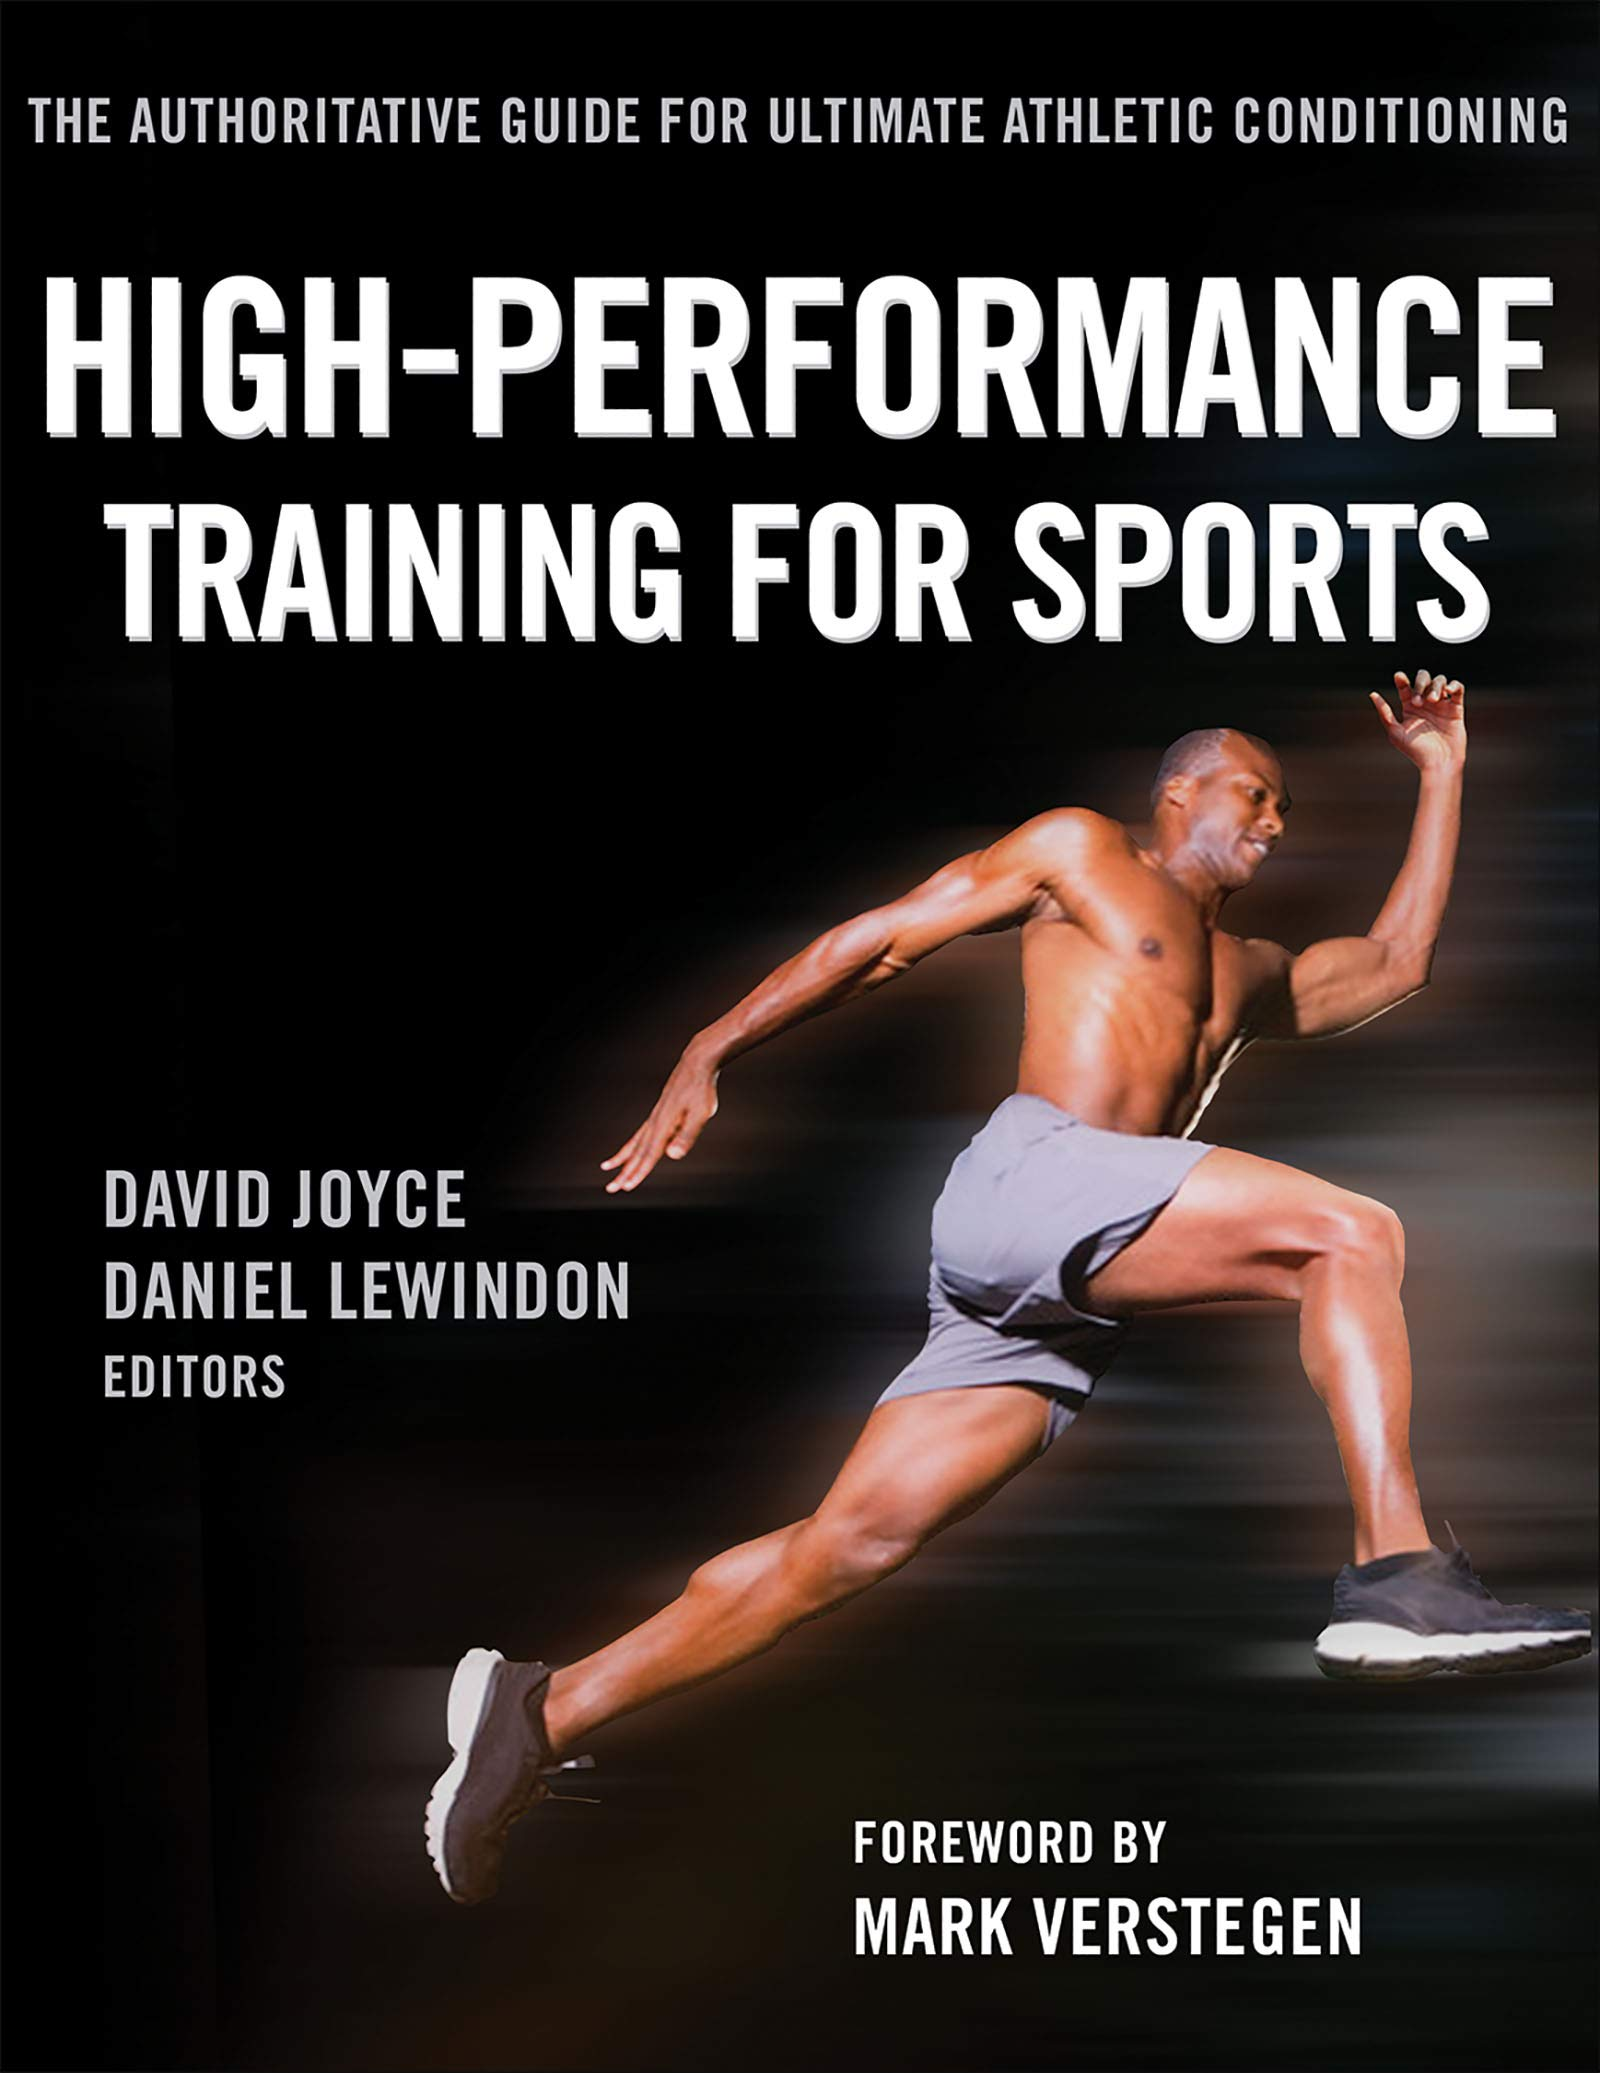 High-Performance Training for Sports by Human Kinetics Publishers